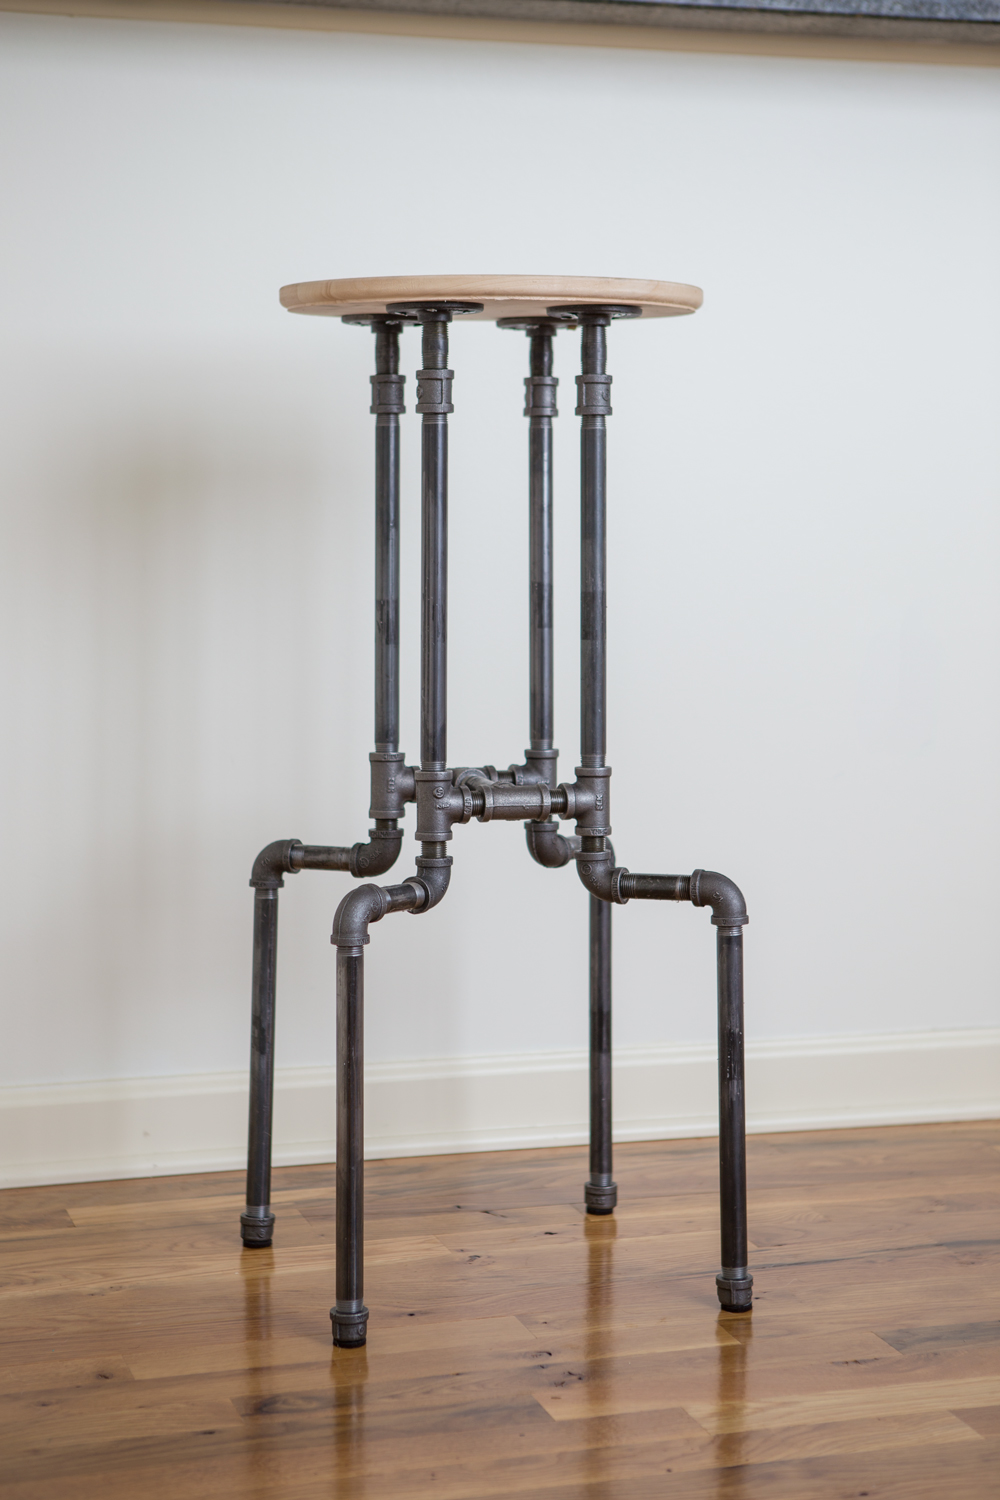 Stools 20 Inches High